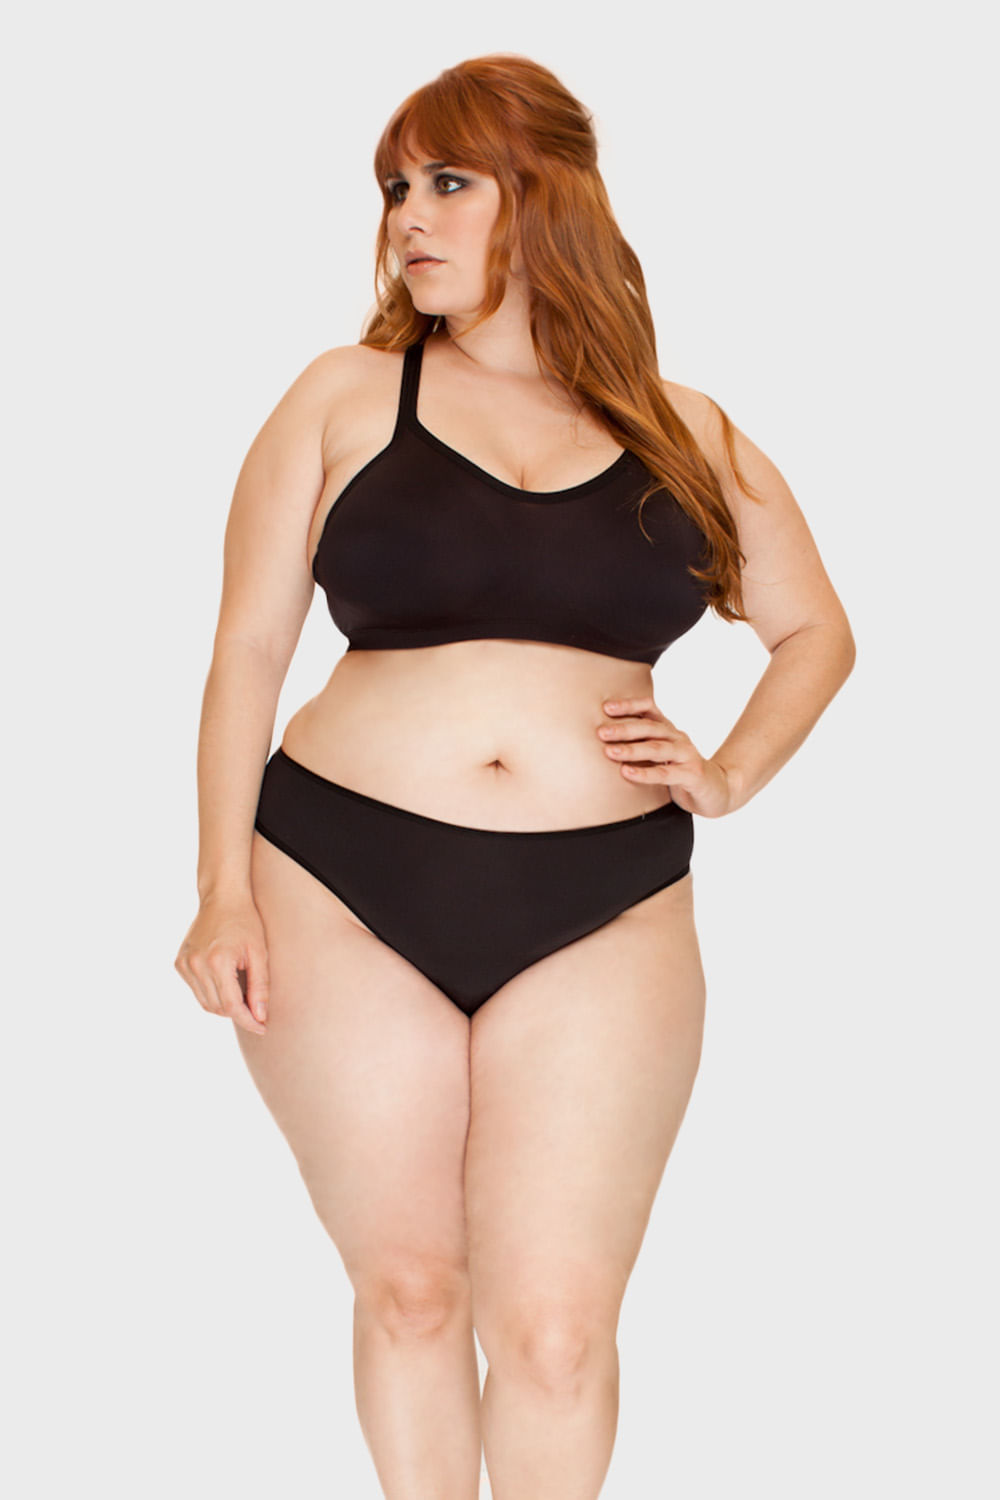 Calcinha-Laterais-Largas-Plus-Size_4